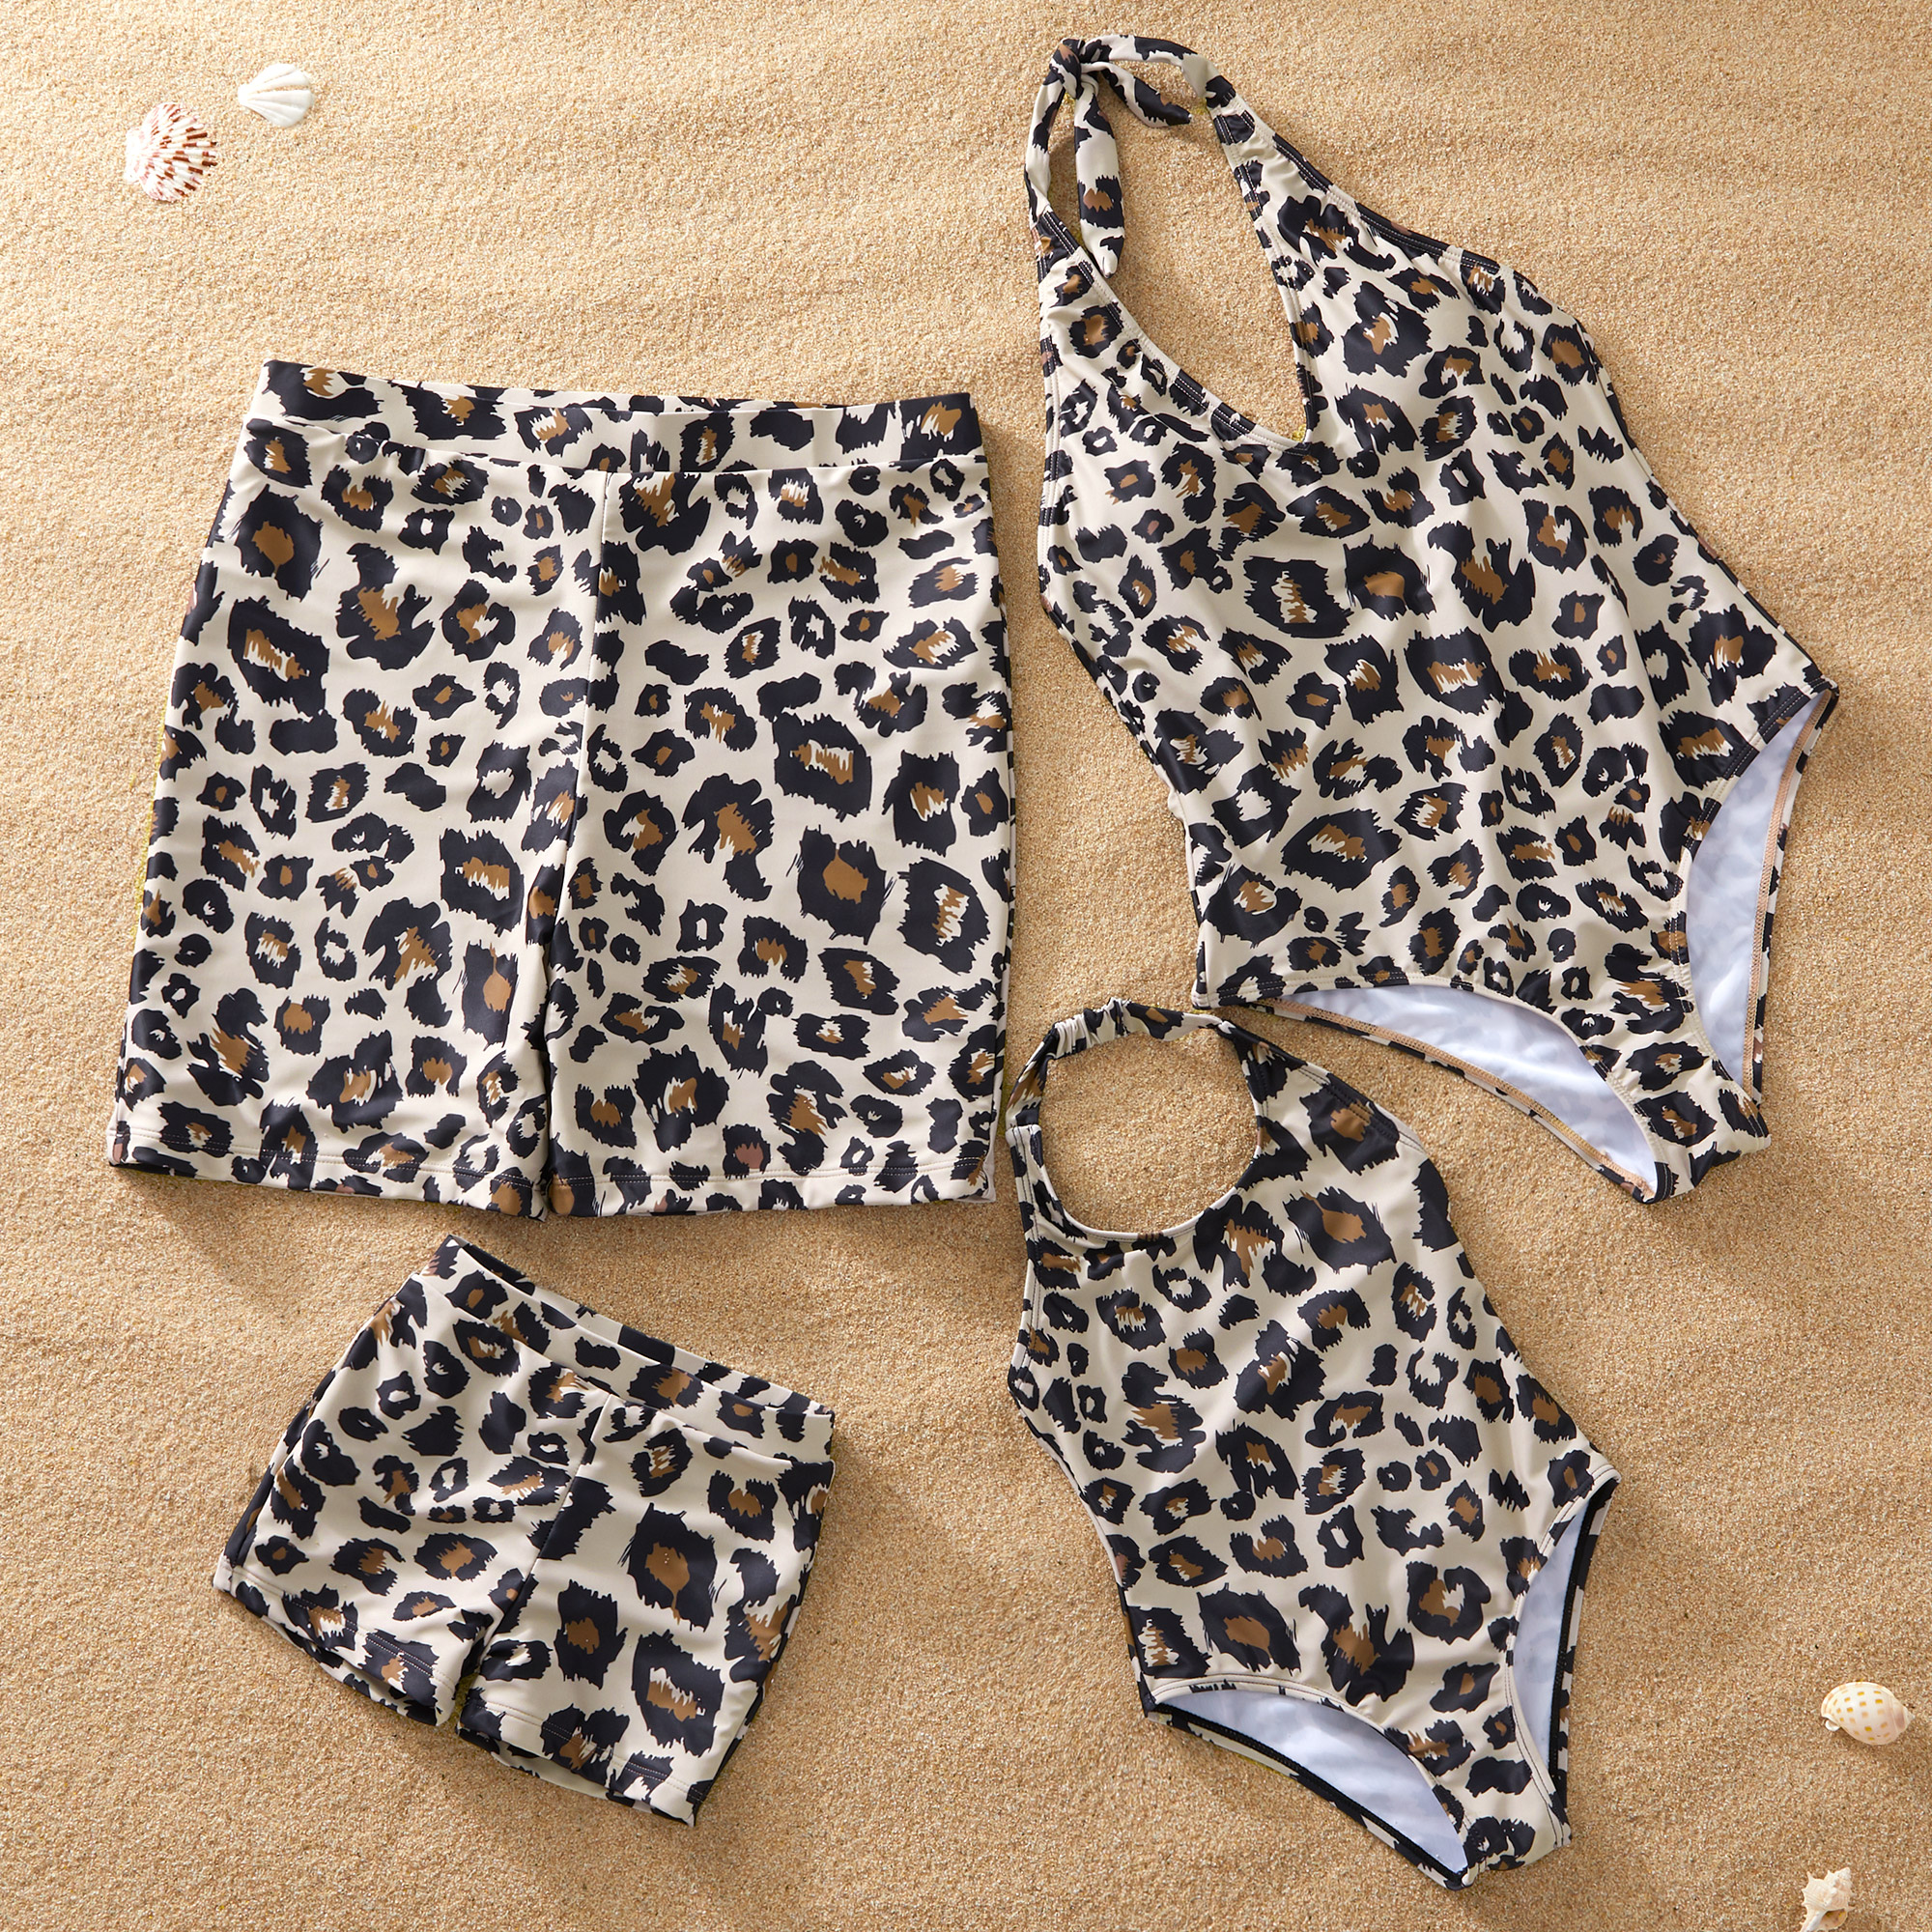 Leopard Swimsuit for Family